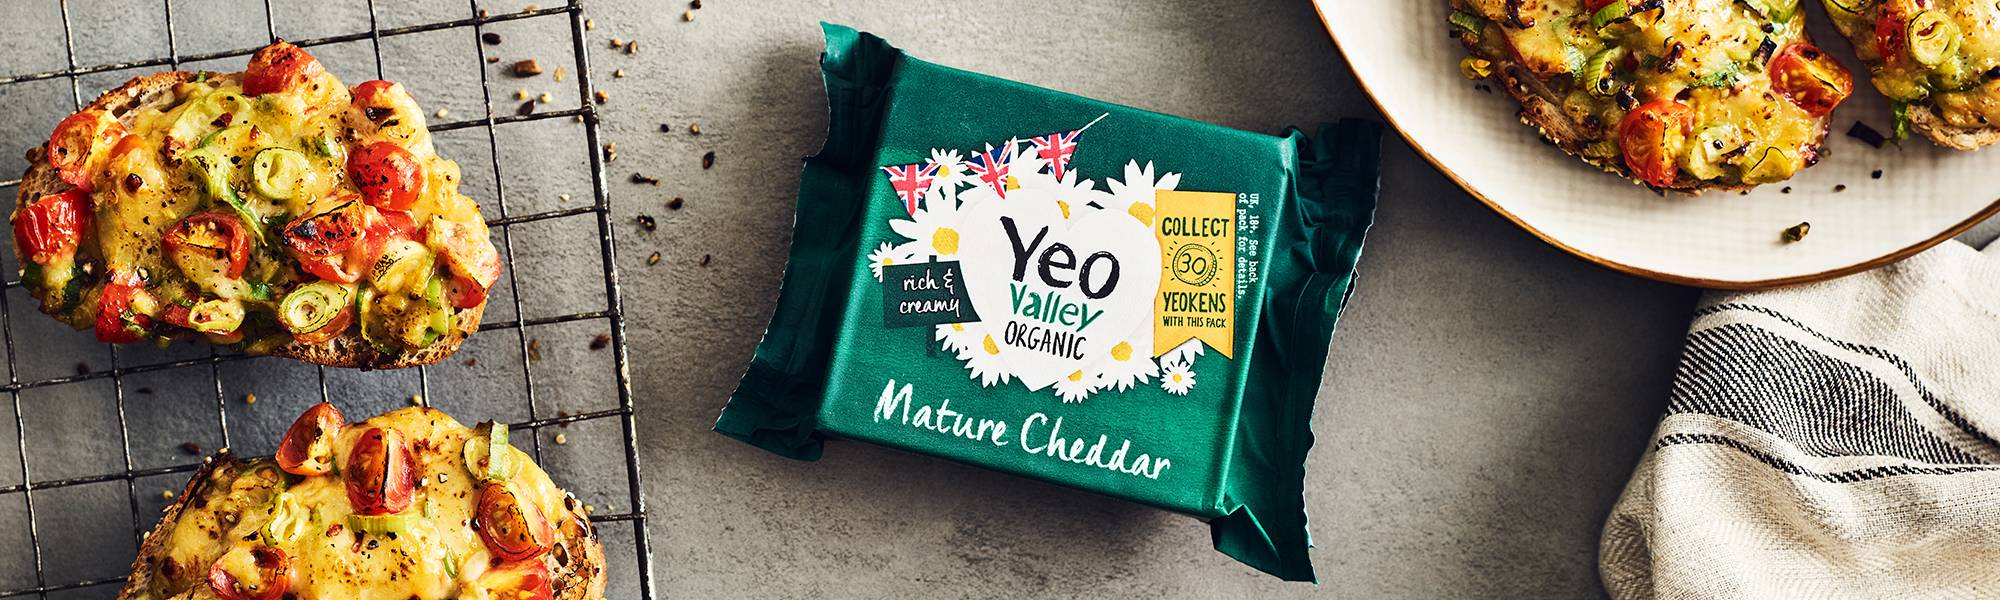 Yeo Valley Organic Mature Cheddar Cheese